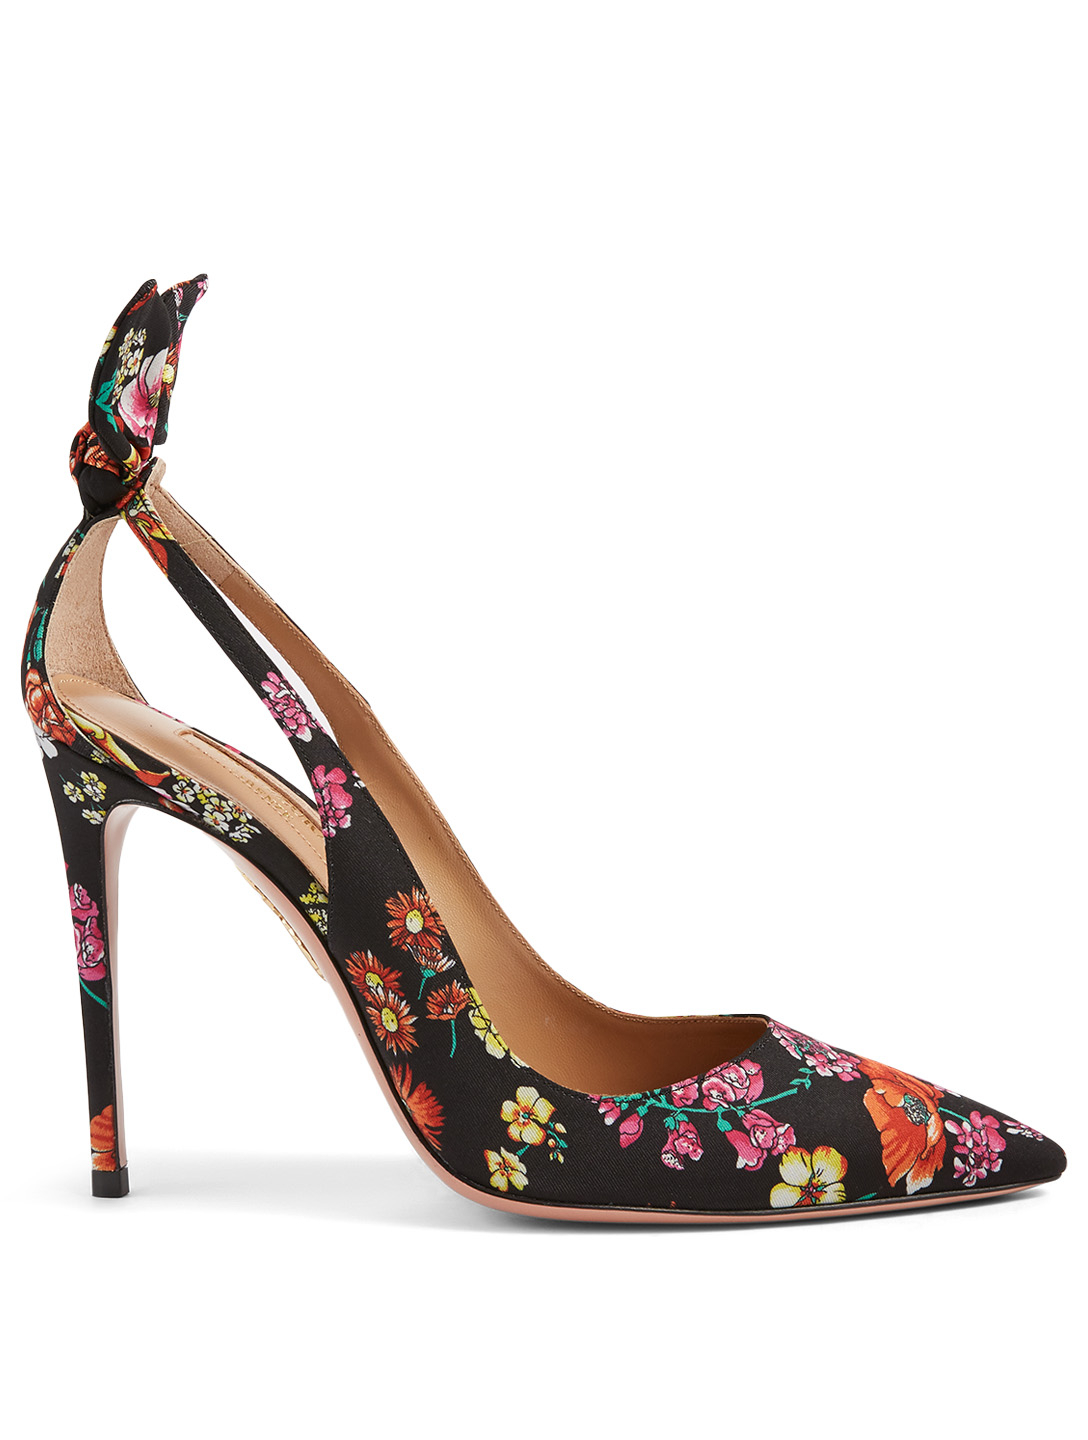 AQUAZZURA Deneuve 105 Fabric Pumps In Floral Print Women's Multi